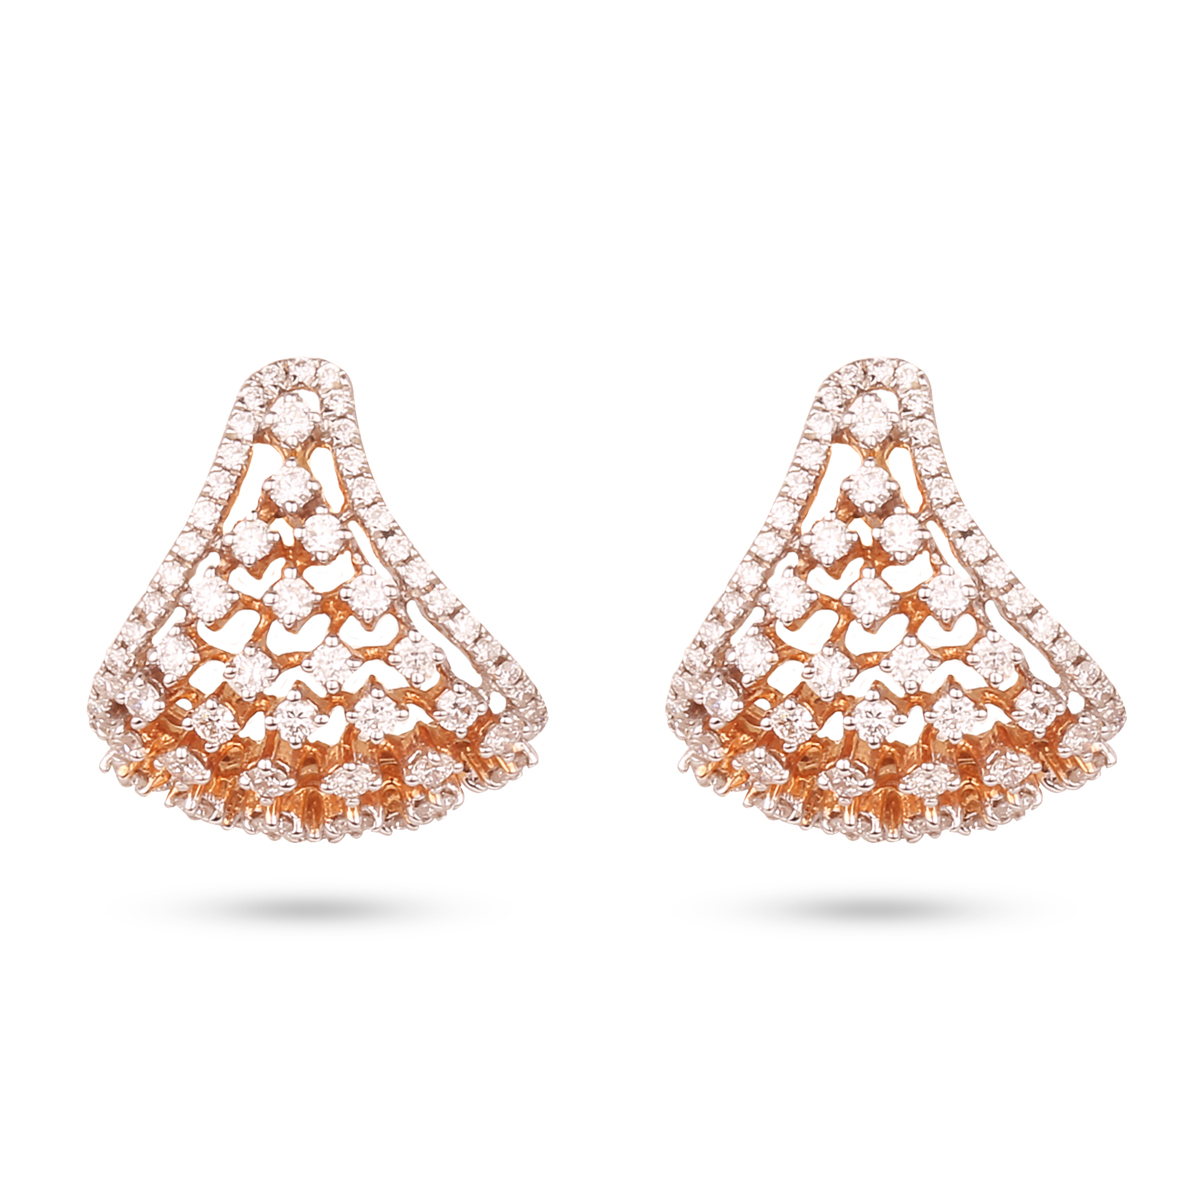 Curvy Diamond Earrings